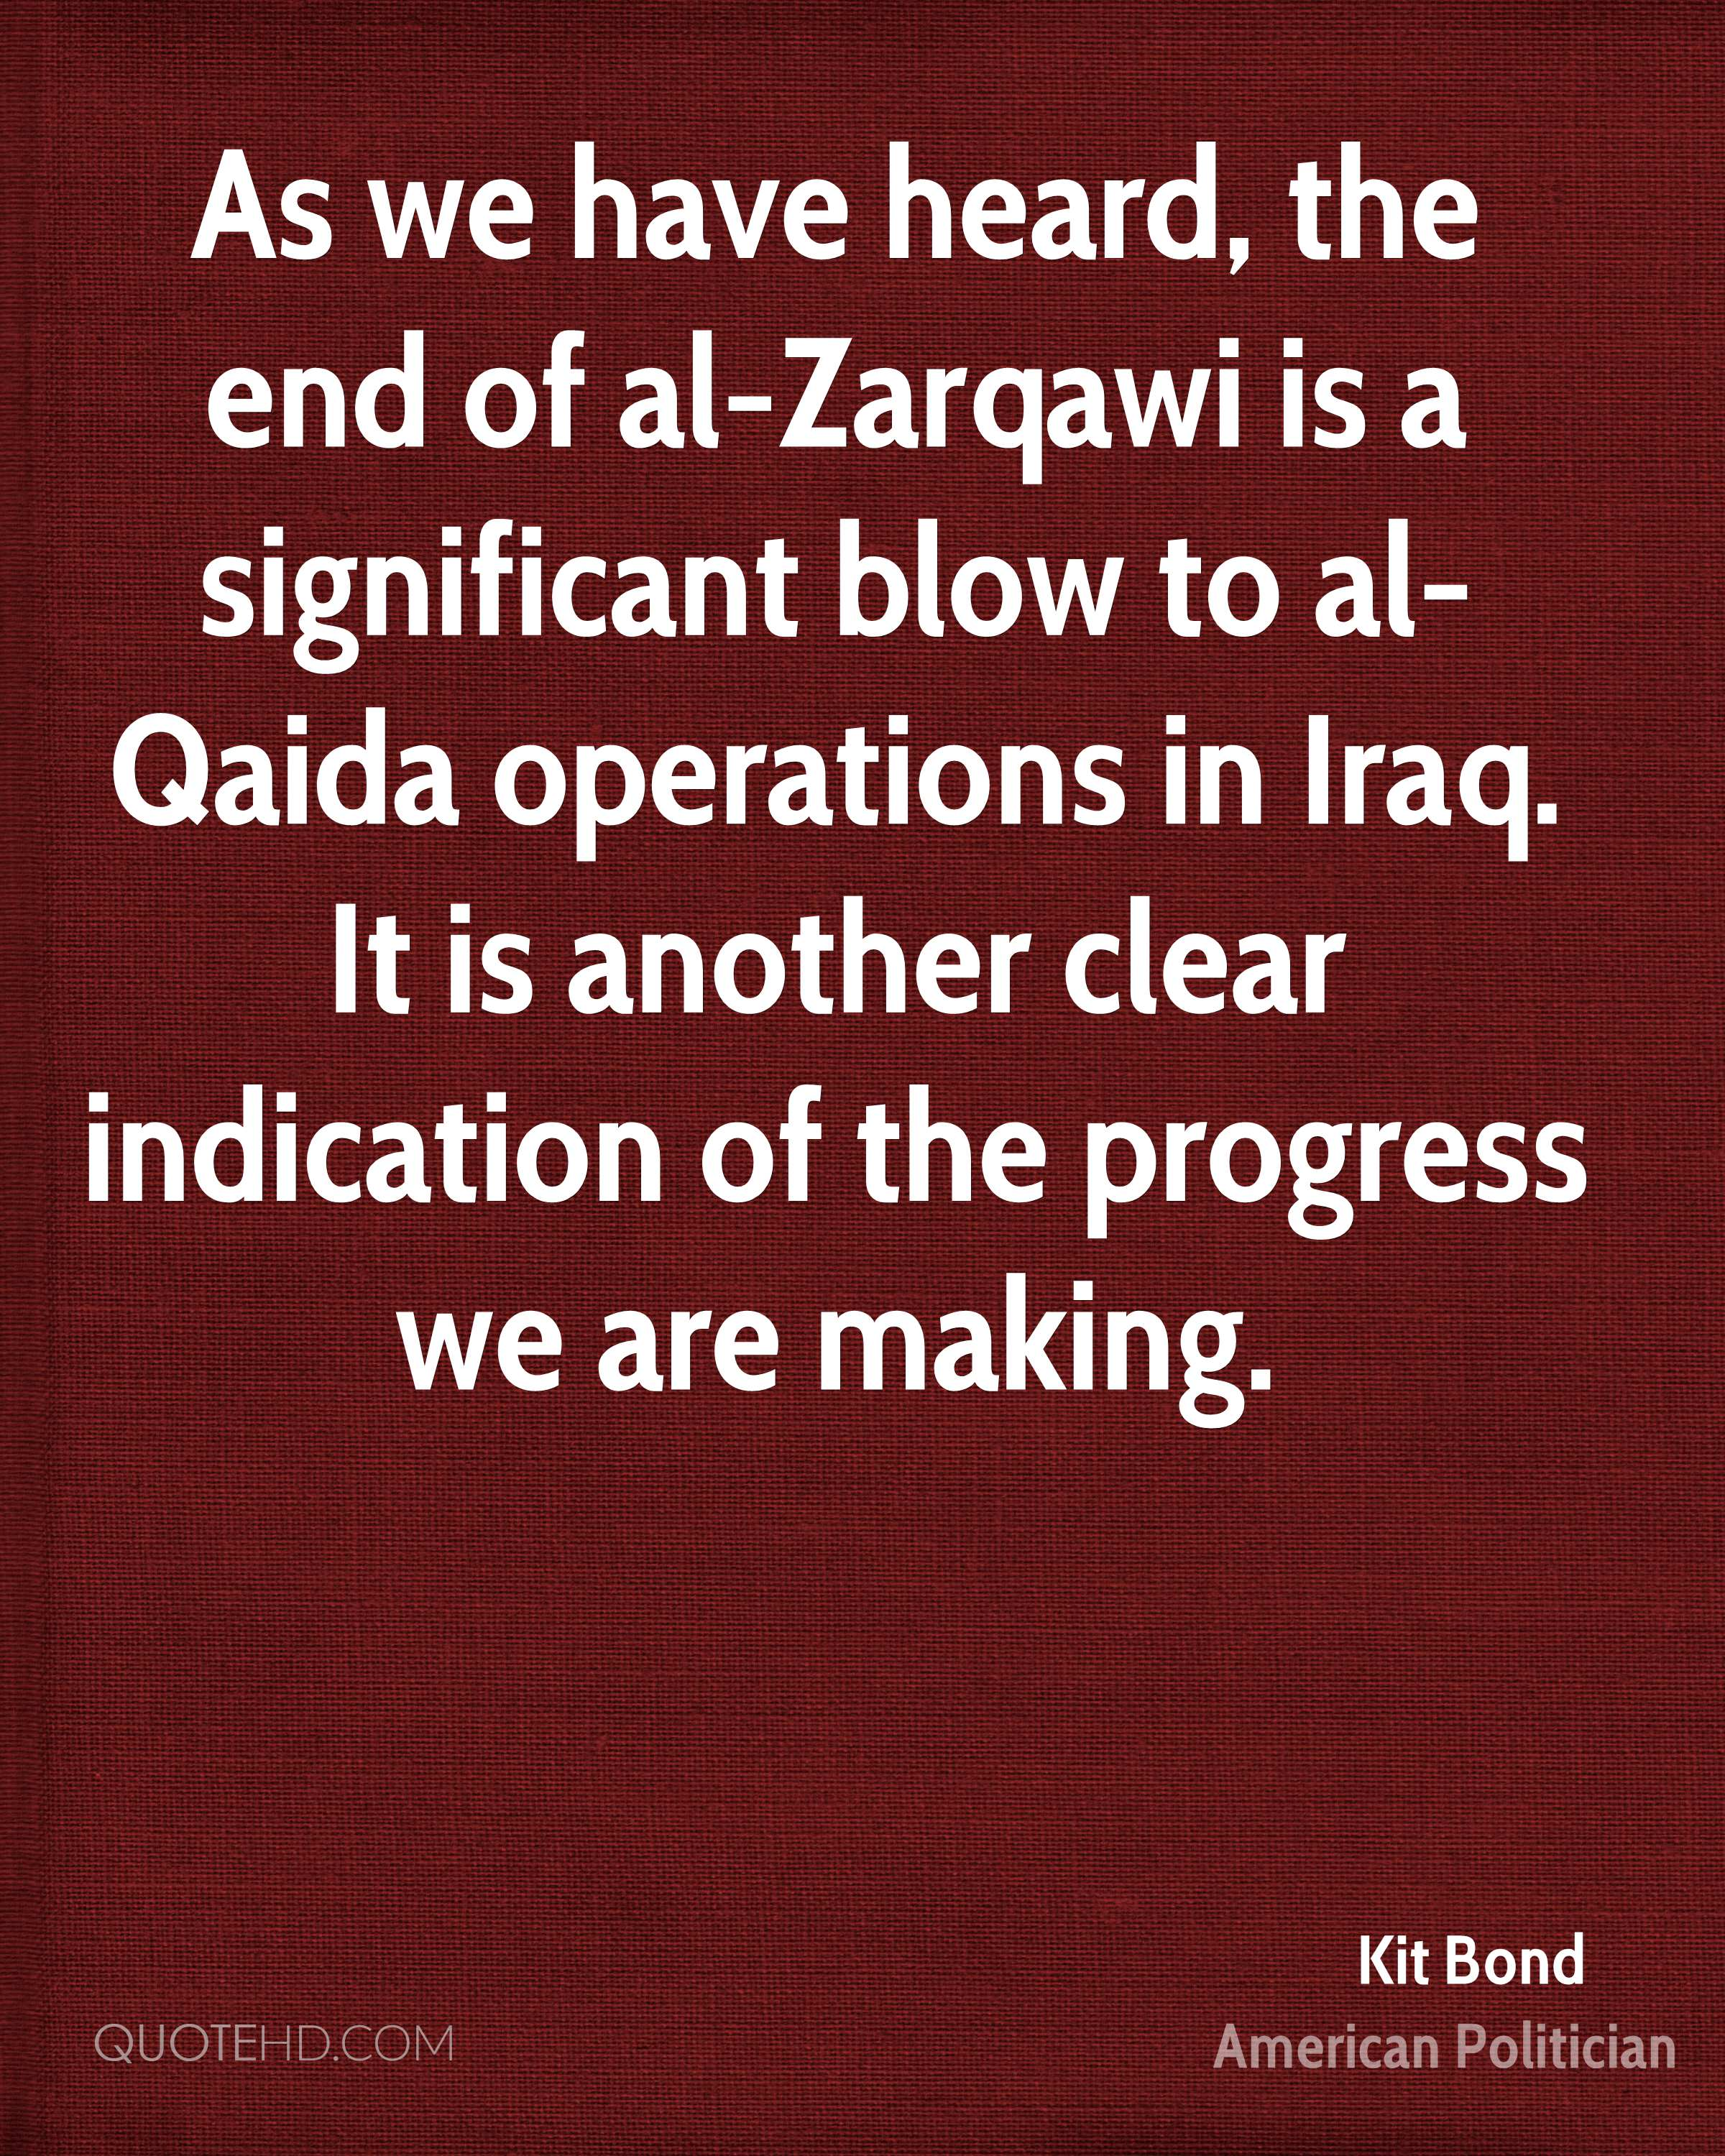 As we have heard, the end of al-Zarqawi is a significant blow to al-Qaida operations in Iraq. It is another clear indication of the progress we are making.